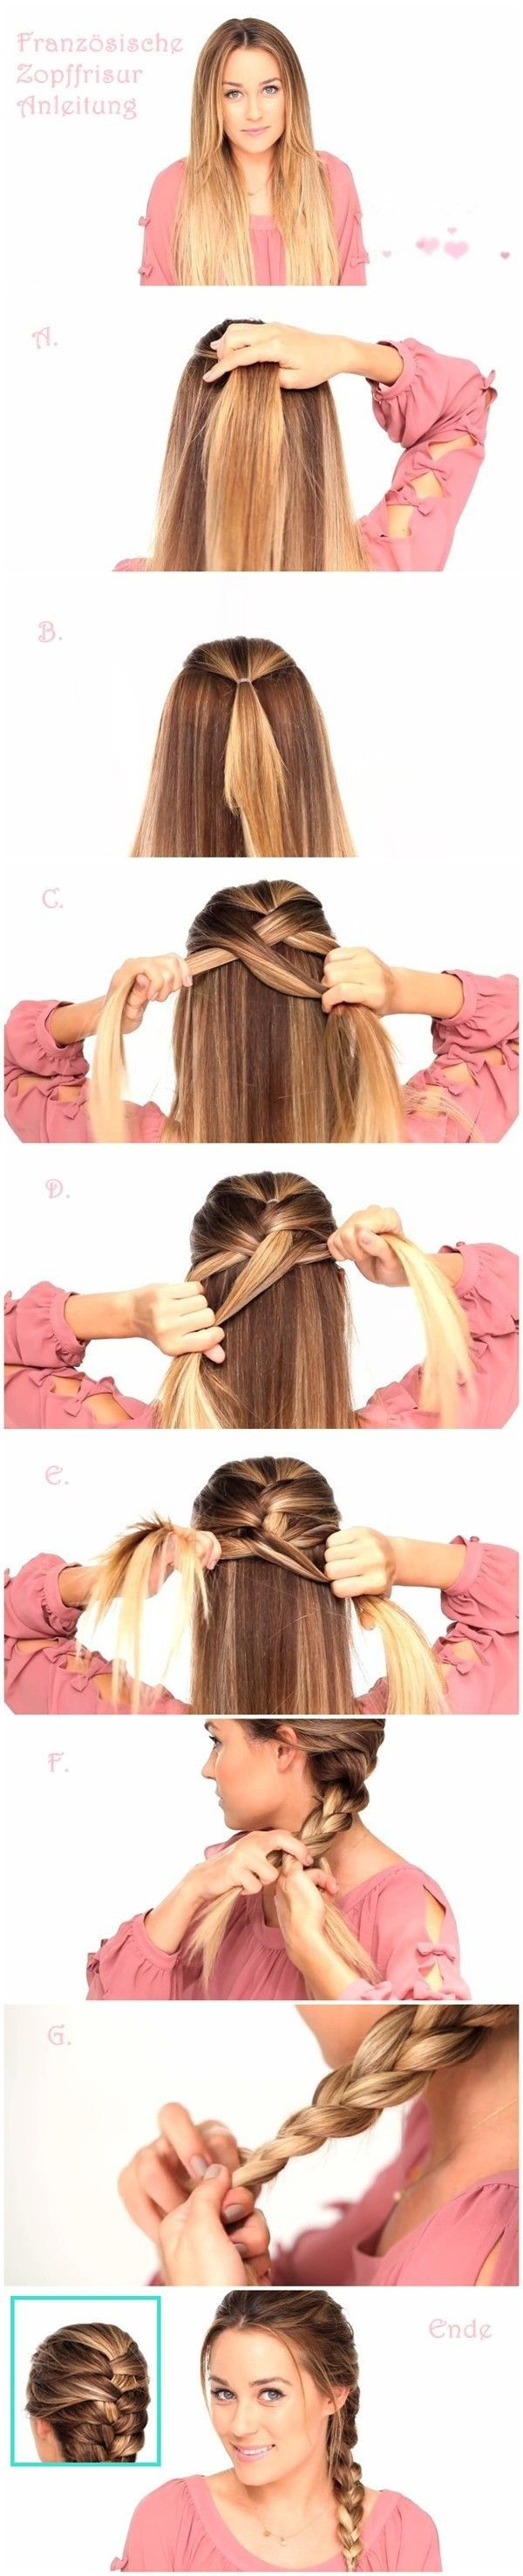 15 Super Easy Hairstyles With Tutorials | Pretty Designs